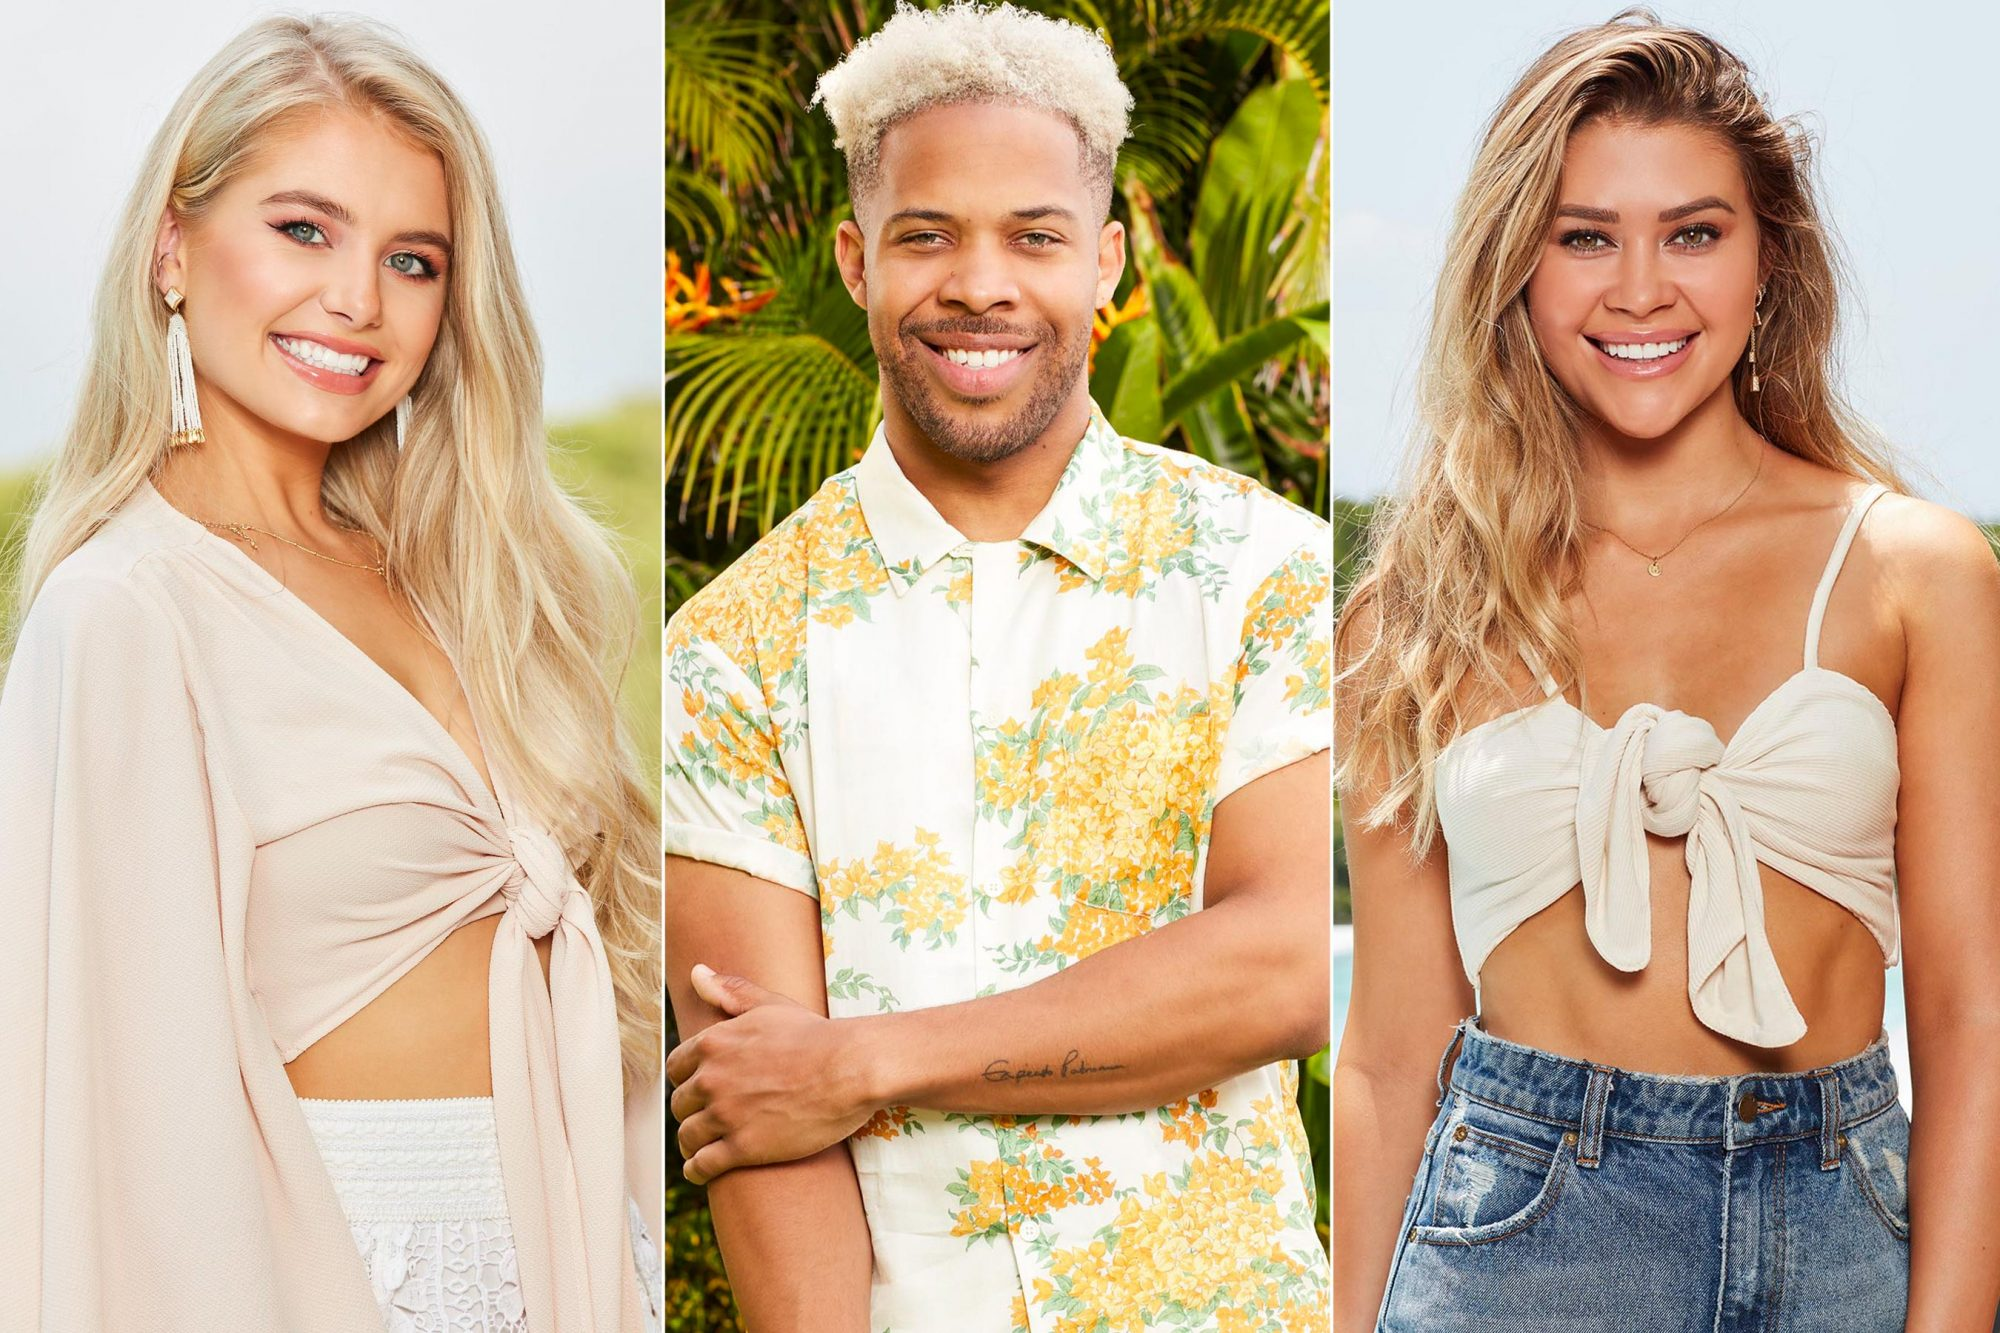 "BACHELOR IN PARADISE - Breakout fan favorites from ""The Bachelor"" franchise are back and ready for a second (or third or fourth) chance at finding love, as the hit series ""Bachelor in Paradise"" returns for Season 6 on a newly announced premiere date, MONDAY, AUG. 5 (8:00-10:01 p.m. EDT), on ABC. Episodes can also be viewed the next day on ABC.com, the ABC app or Hulu. Starting the following week on Monday, Aug. 12, the show will air on both Mondays (8:00-10:01 p.m. EDT) and Tuesdays (8:00-10:00 p.m. EDT). (ABC/Craig Sjodin) DEMI BURNETT WILLS REID CAELYNN MILLER-KEYES"